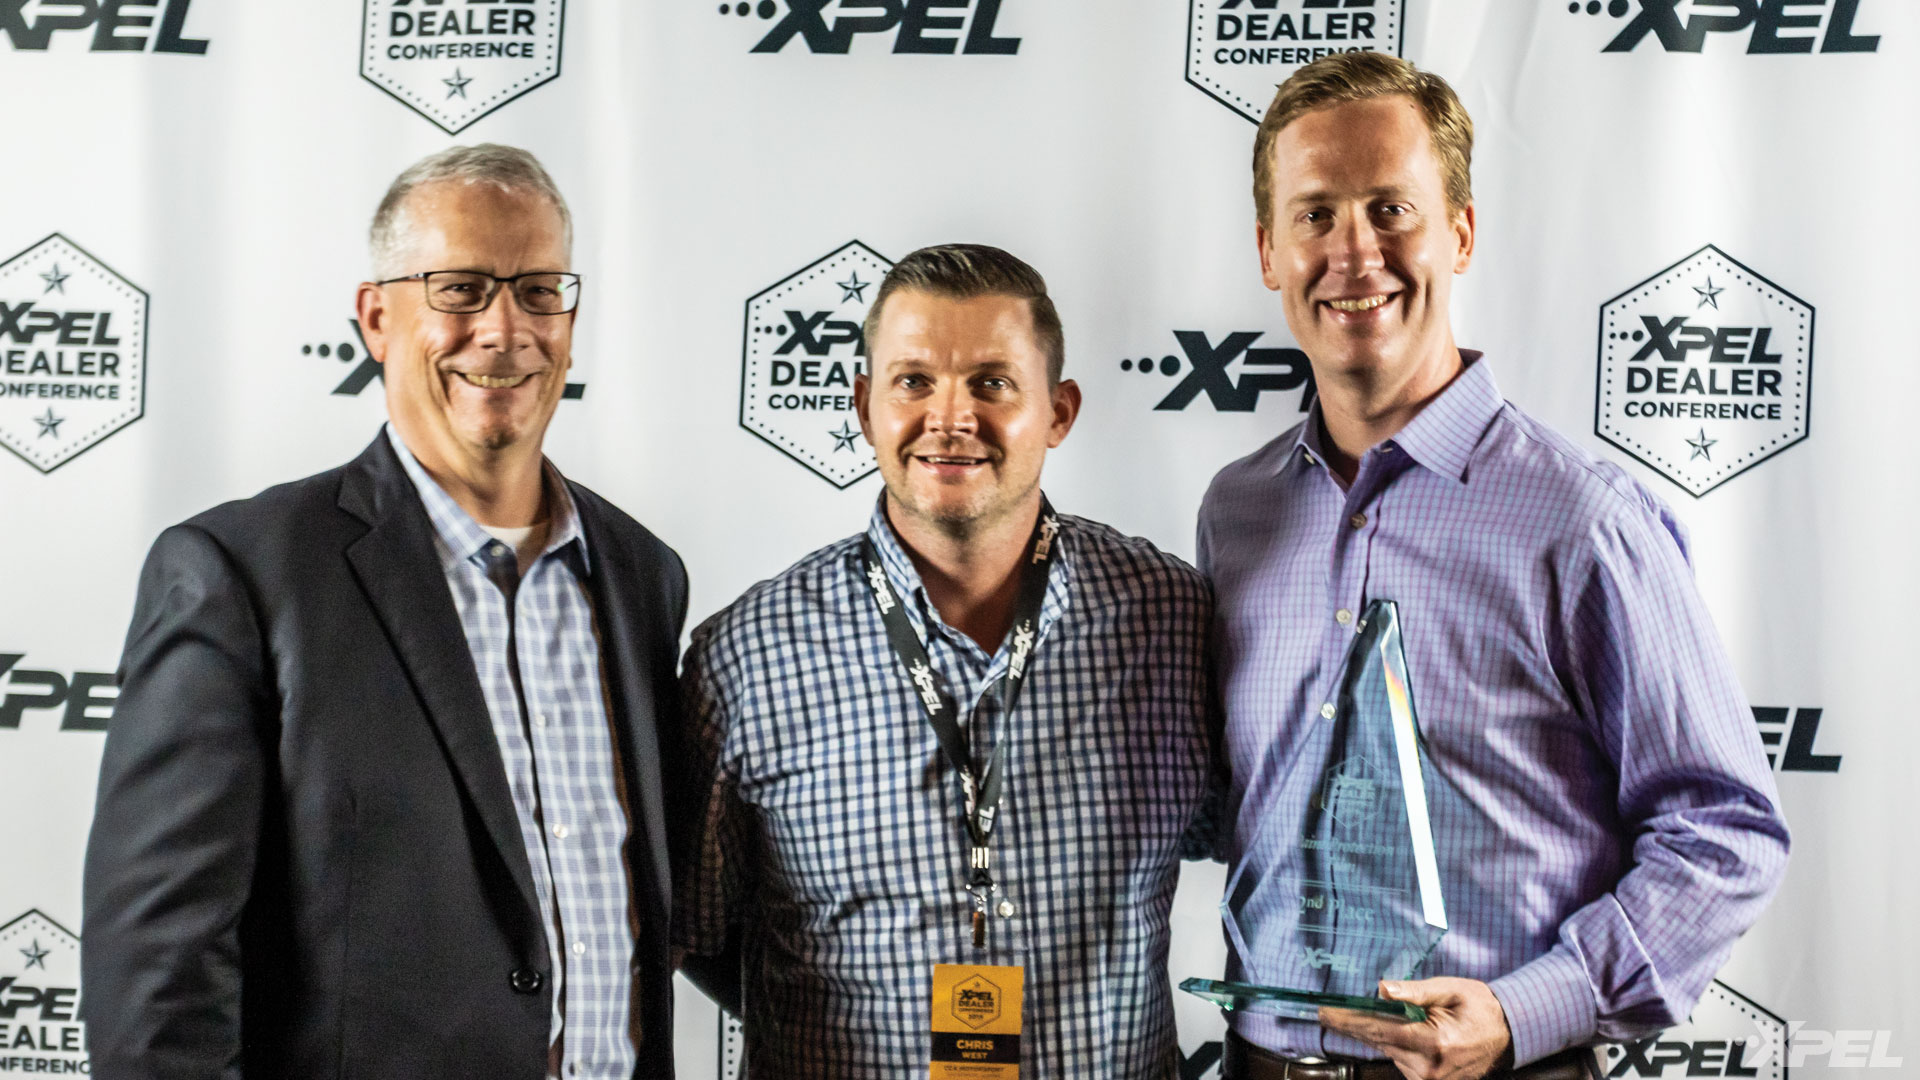 XPEL Dealer Conference 2nd Place Paint Protection Film Winner: Chris West of CCA Motorsport